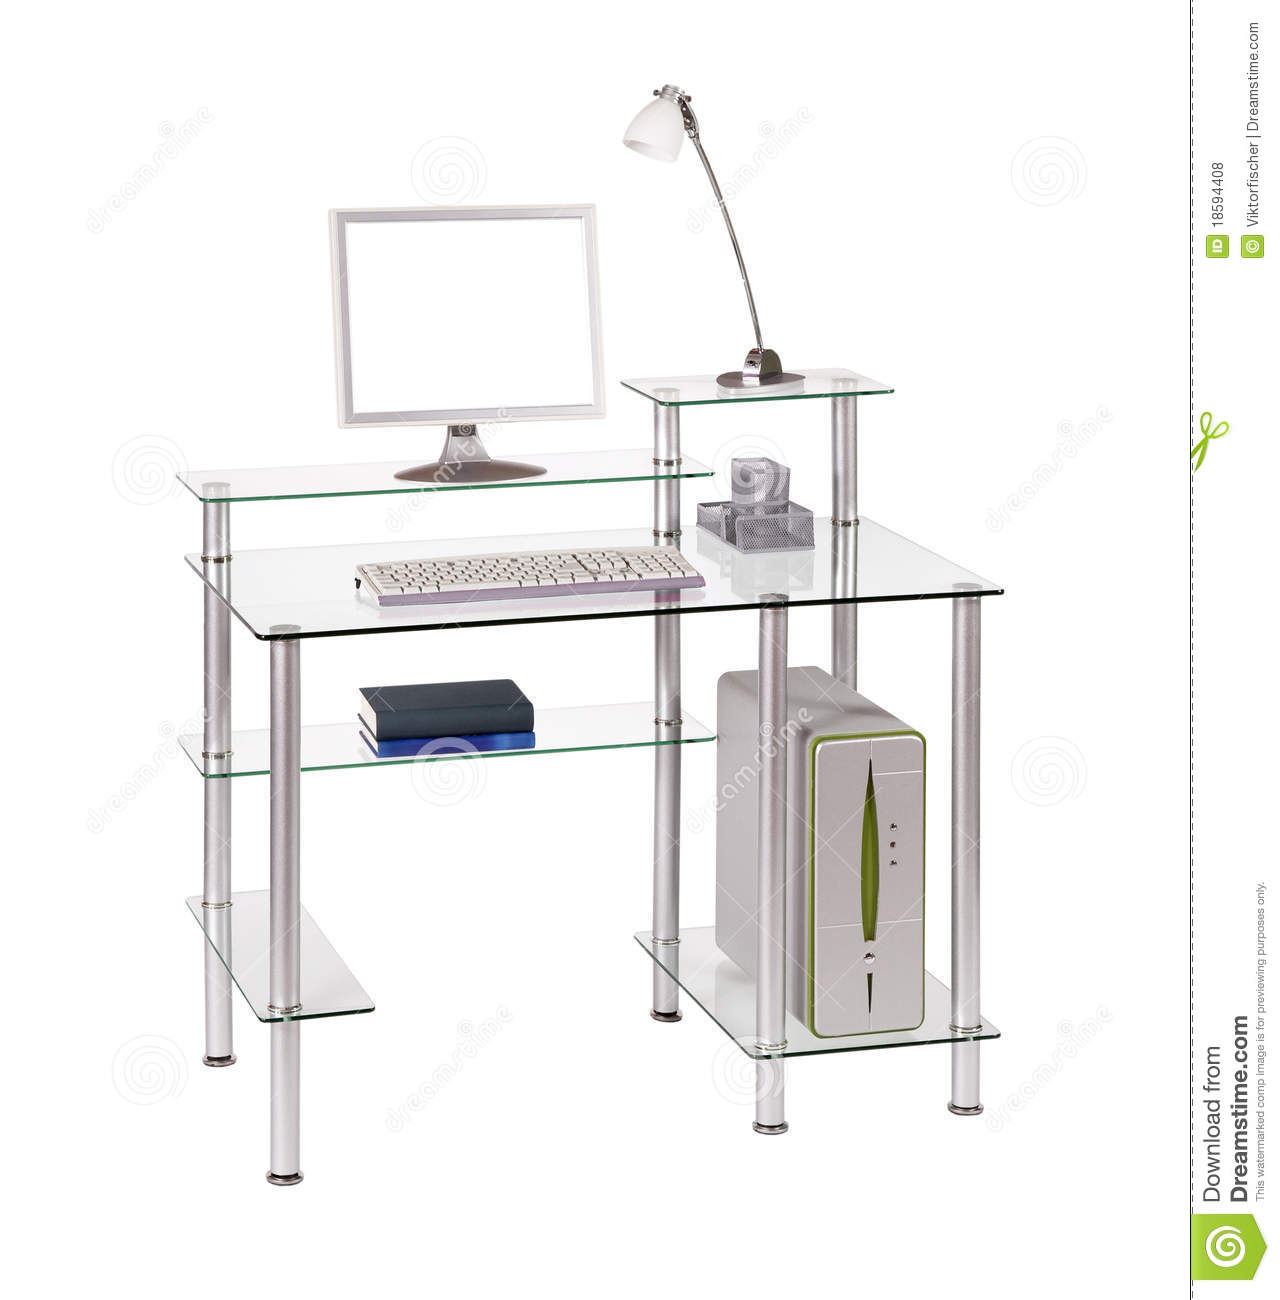 Bureau en verre d 39 ordinateur photos libres de droits image 18594408 - Table d ordinateur en verre ...